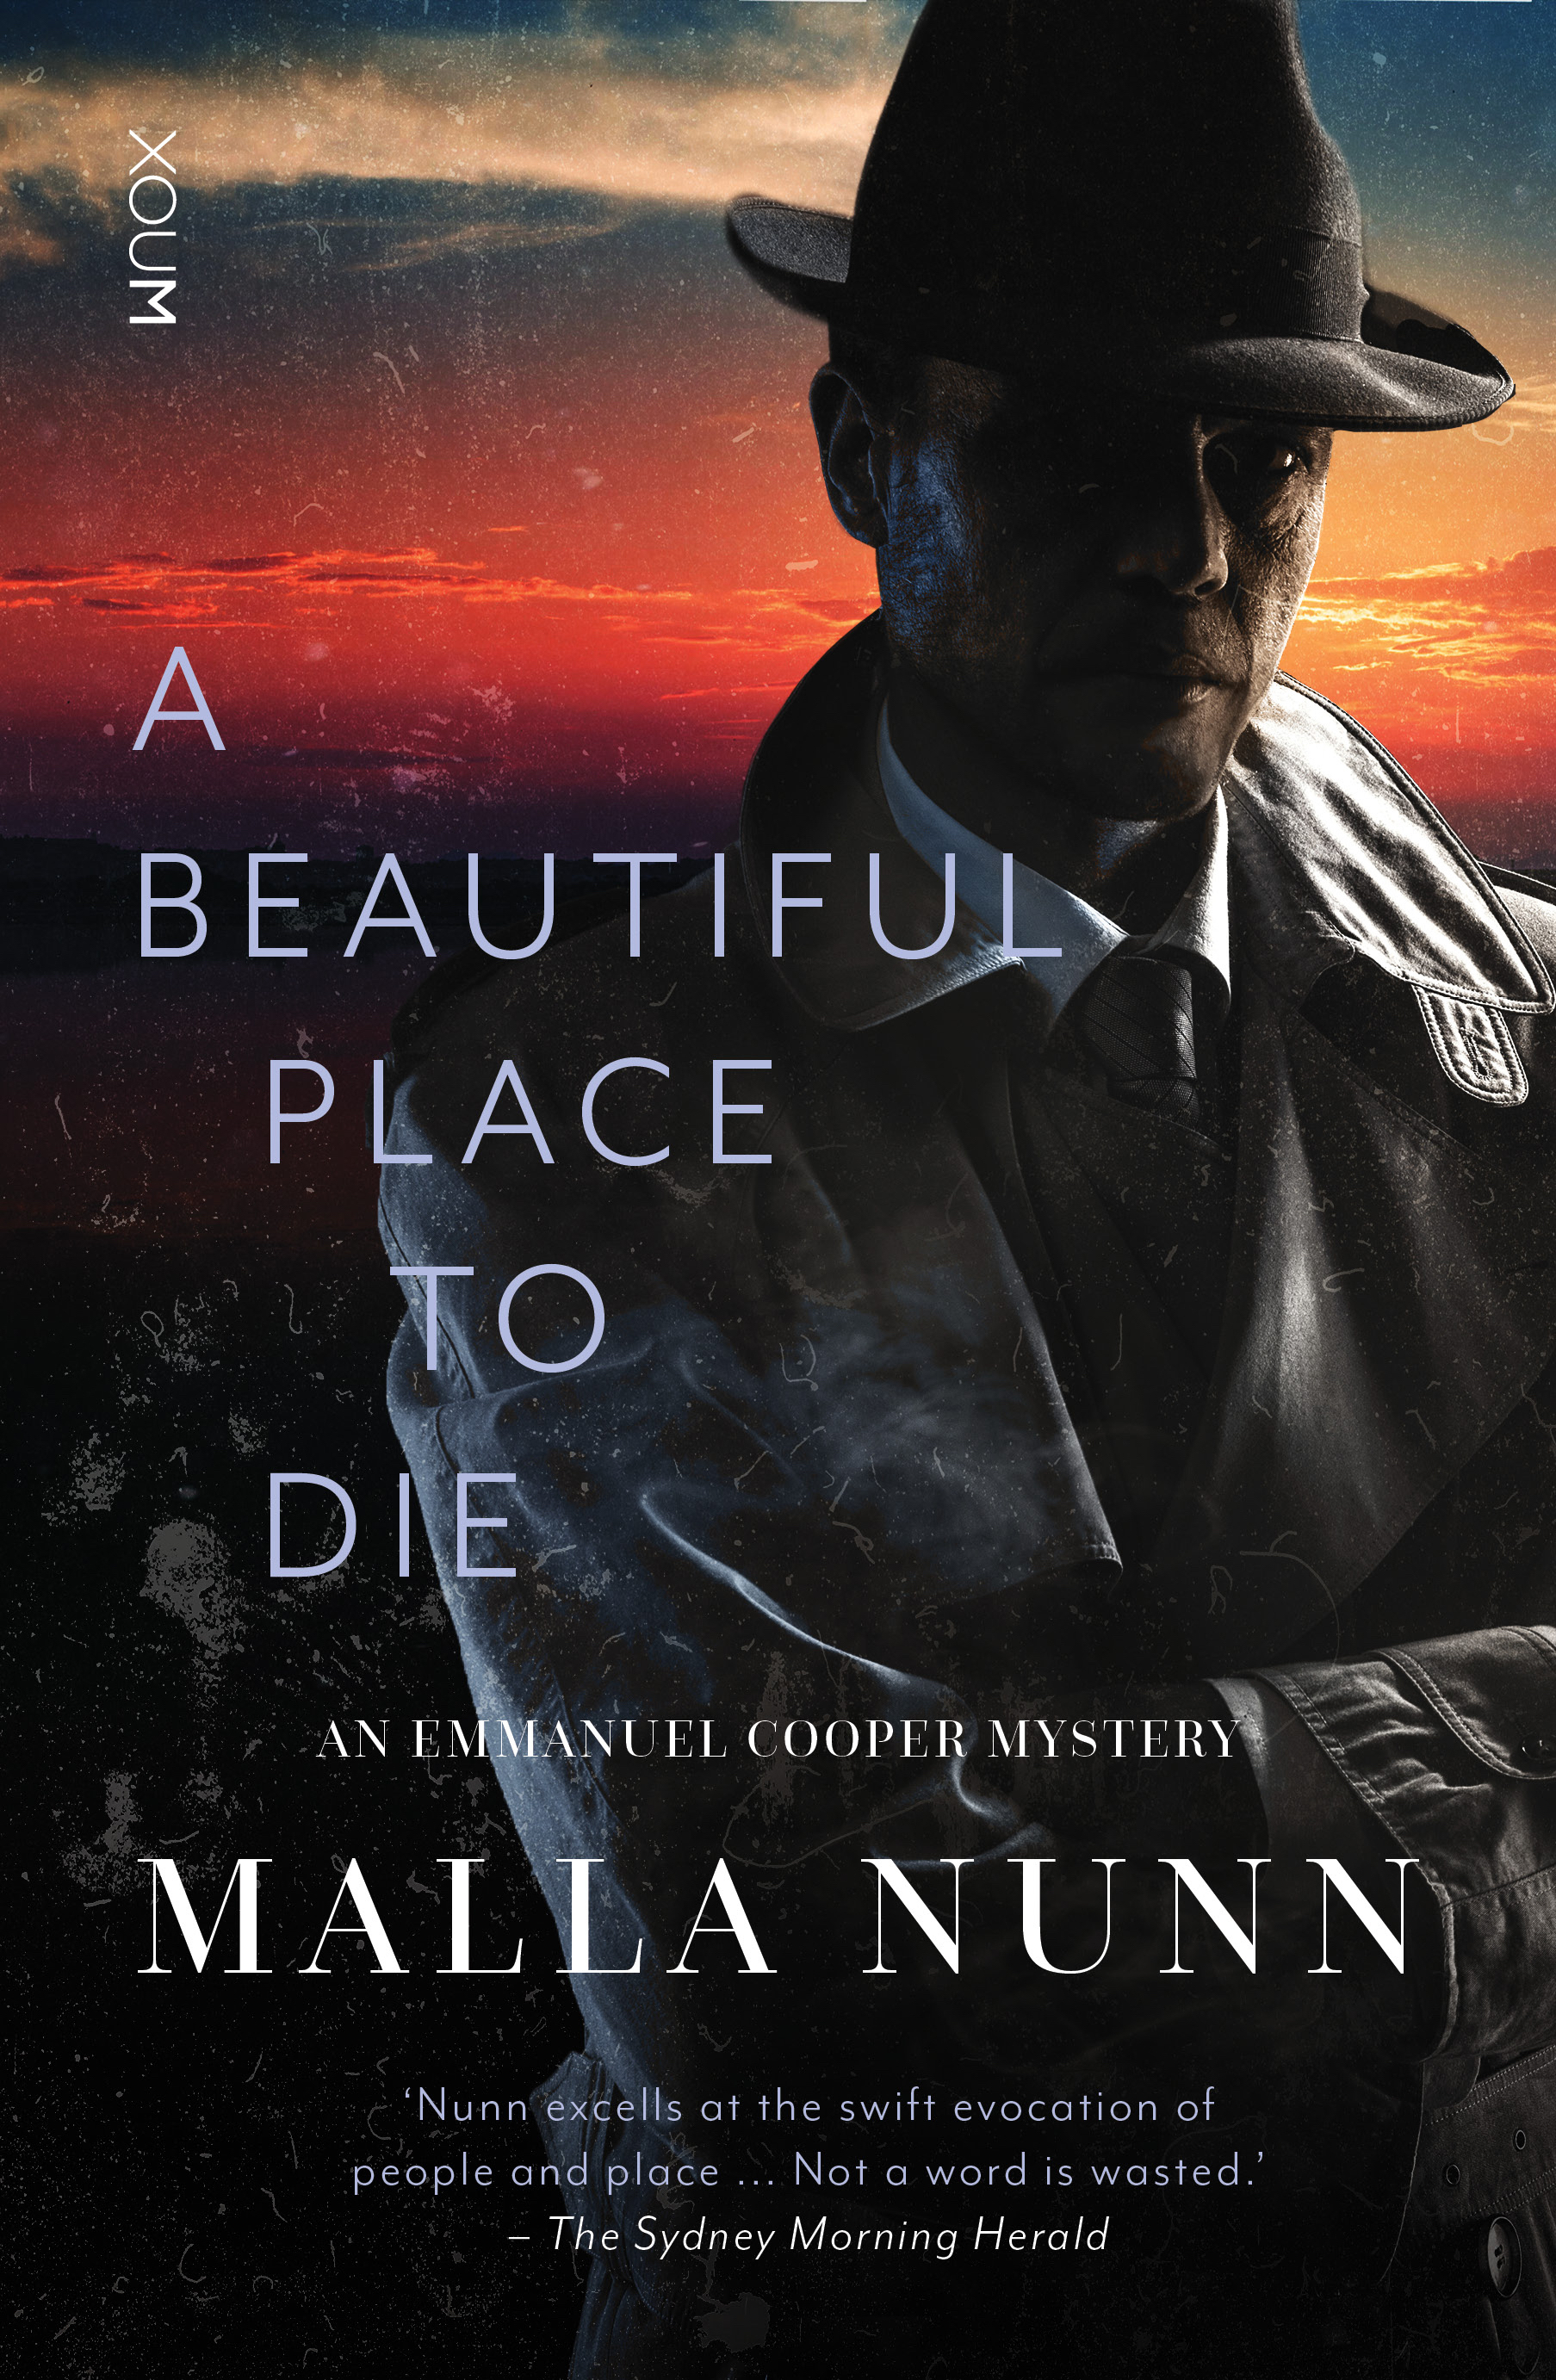 A Beautiful Place To Die Newsouth Books